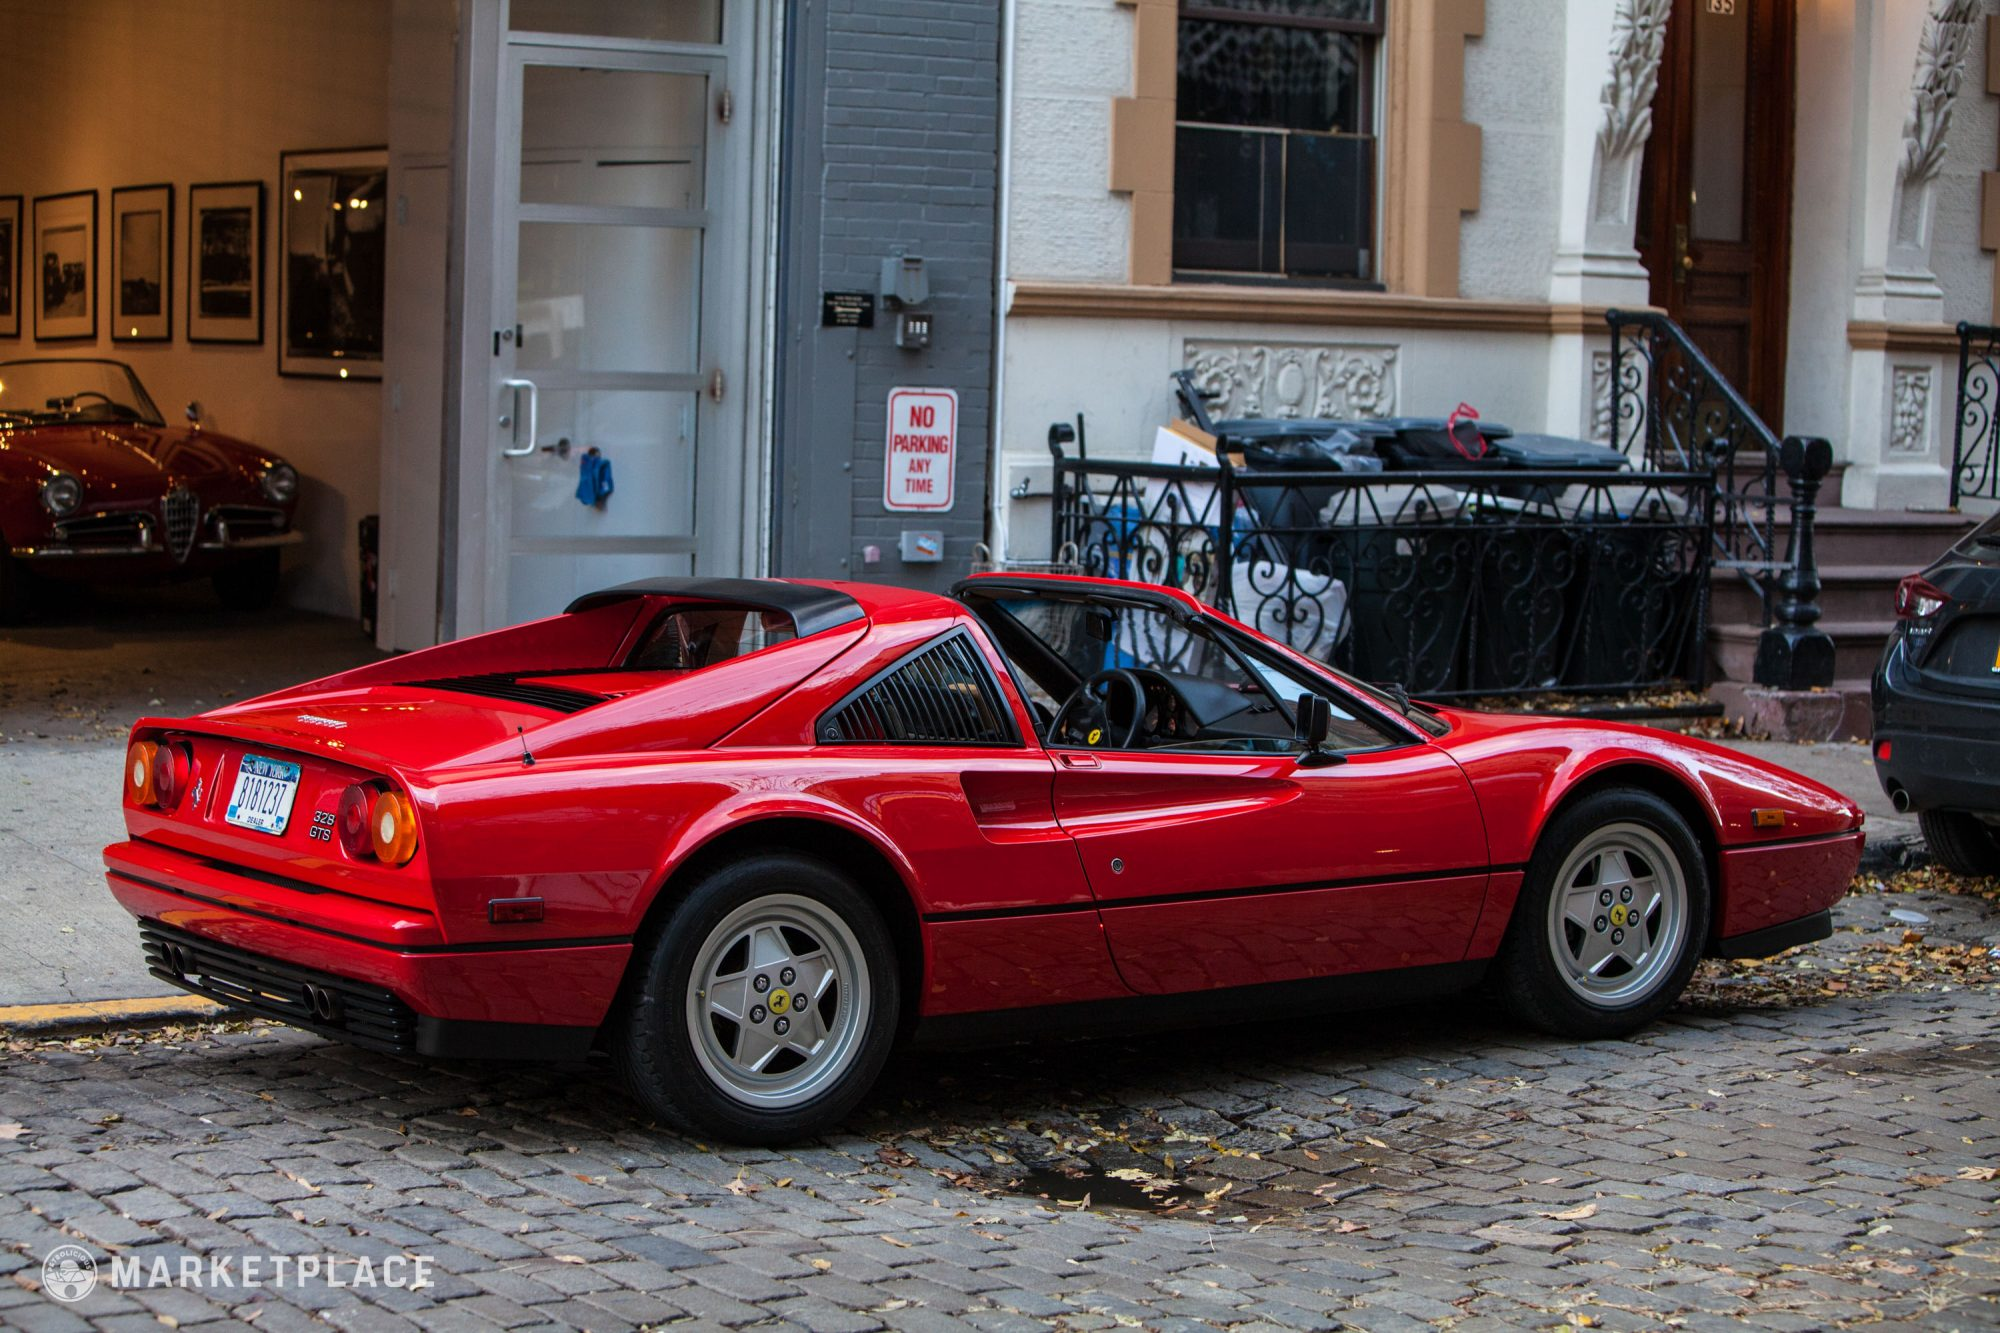 1989 ferrari 328 gts 400 euro job 400 euro. Black Bedroom Furniture Sets. Home Design Ideas